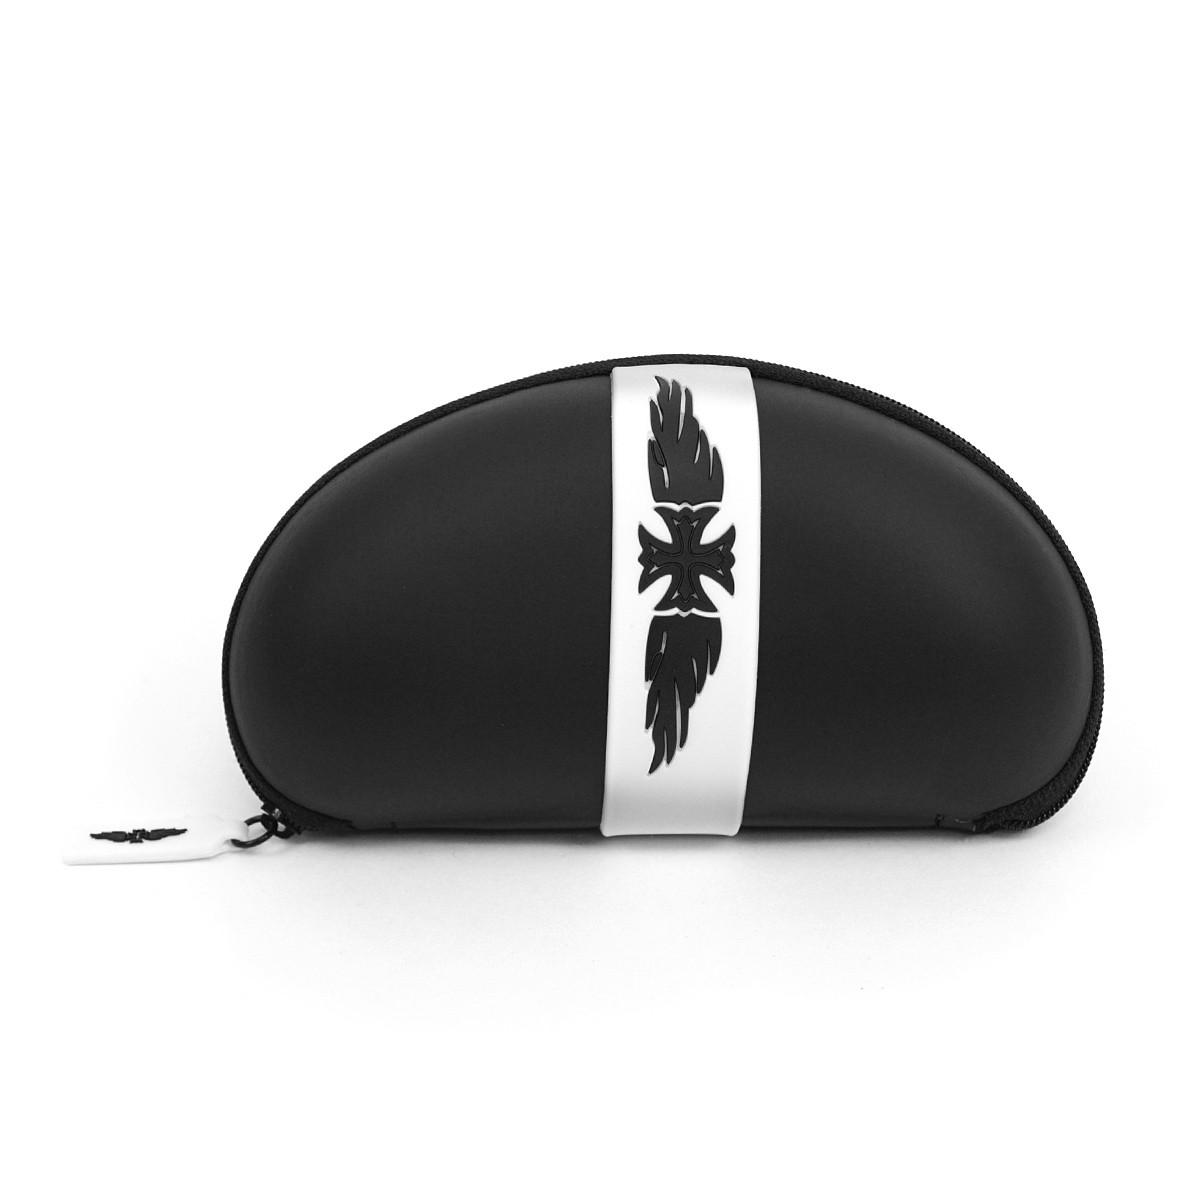 12pc Assorted Winged Iron Cross Hard Plastic Glasses Case with Zipper Enclosure BE151